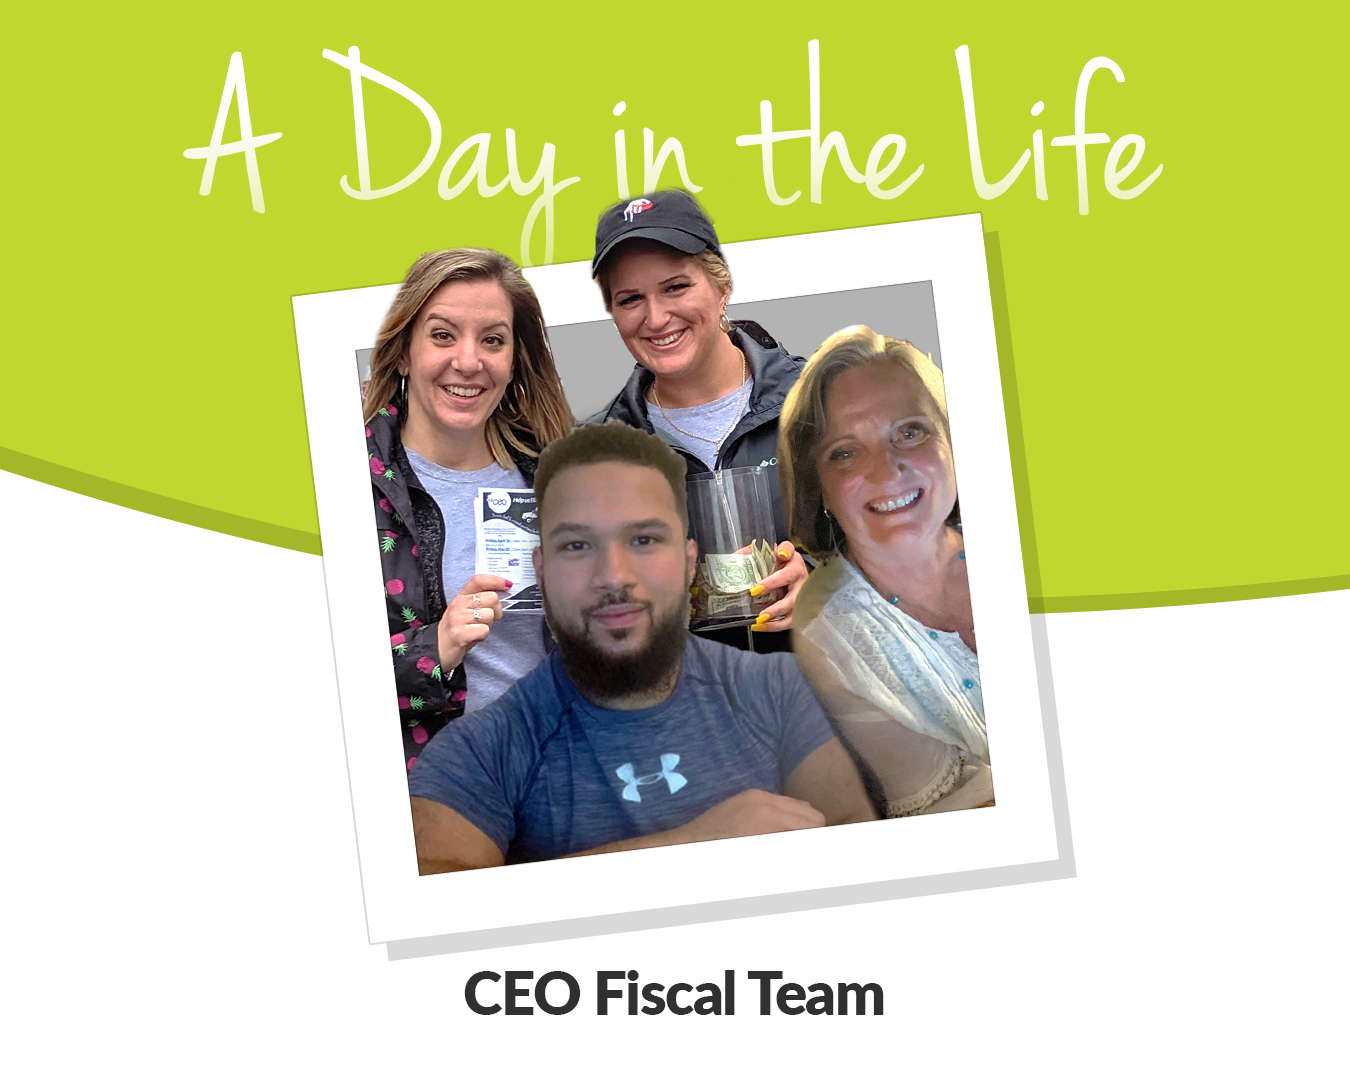 A Day in the Life of the Fiscal Department